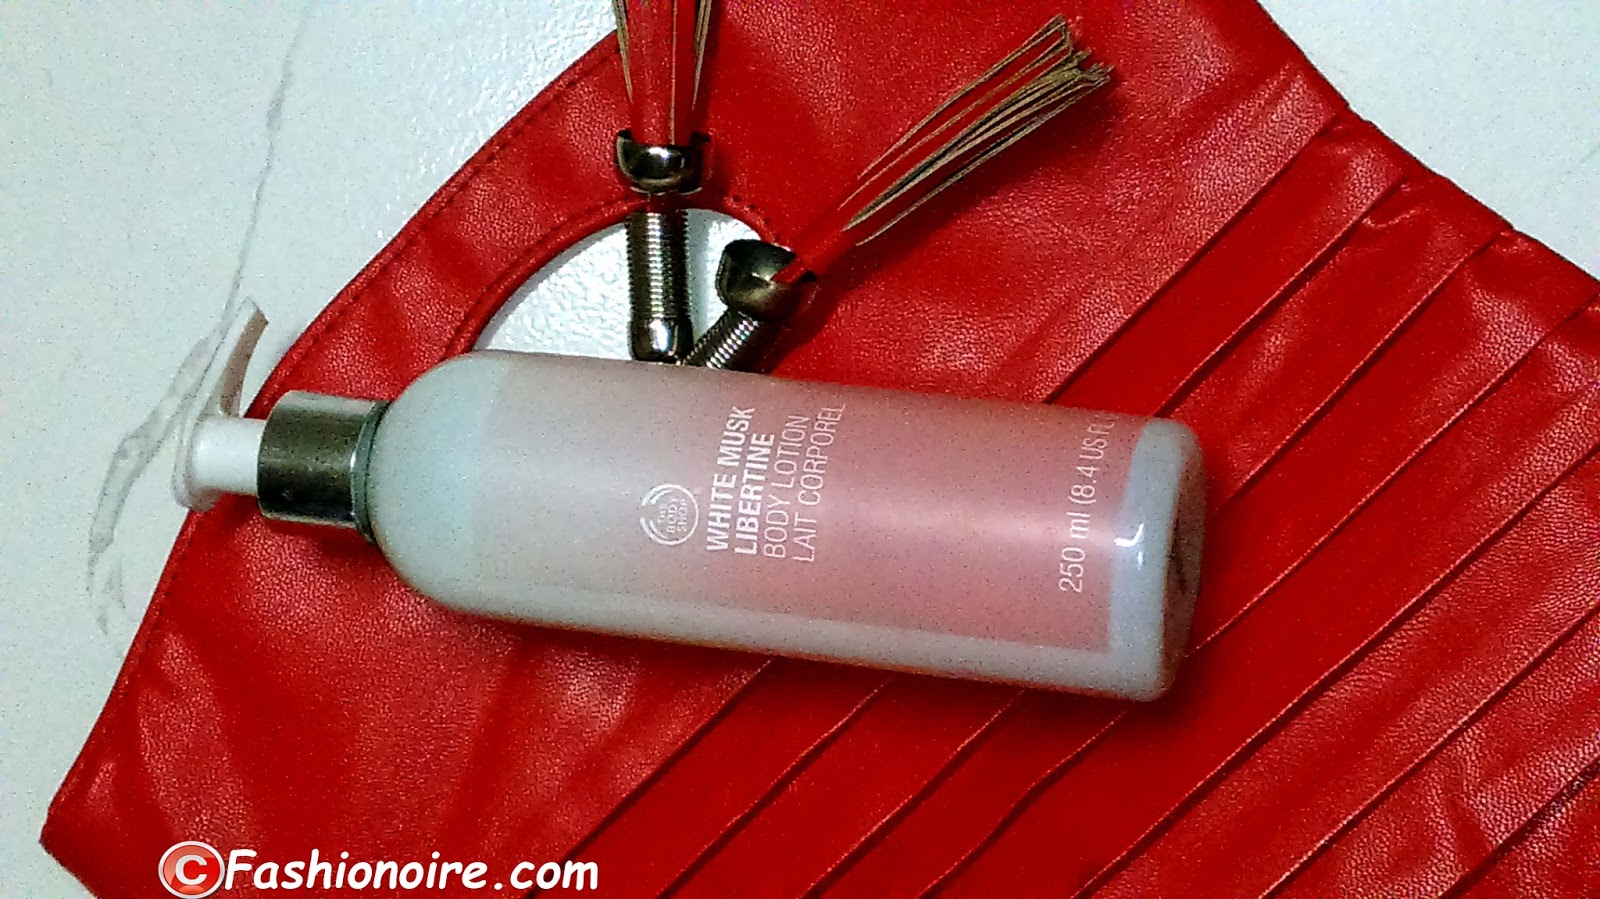 The Body Shop White Musk Libertine Body Lotion Review